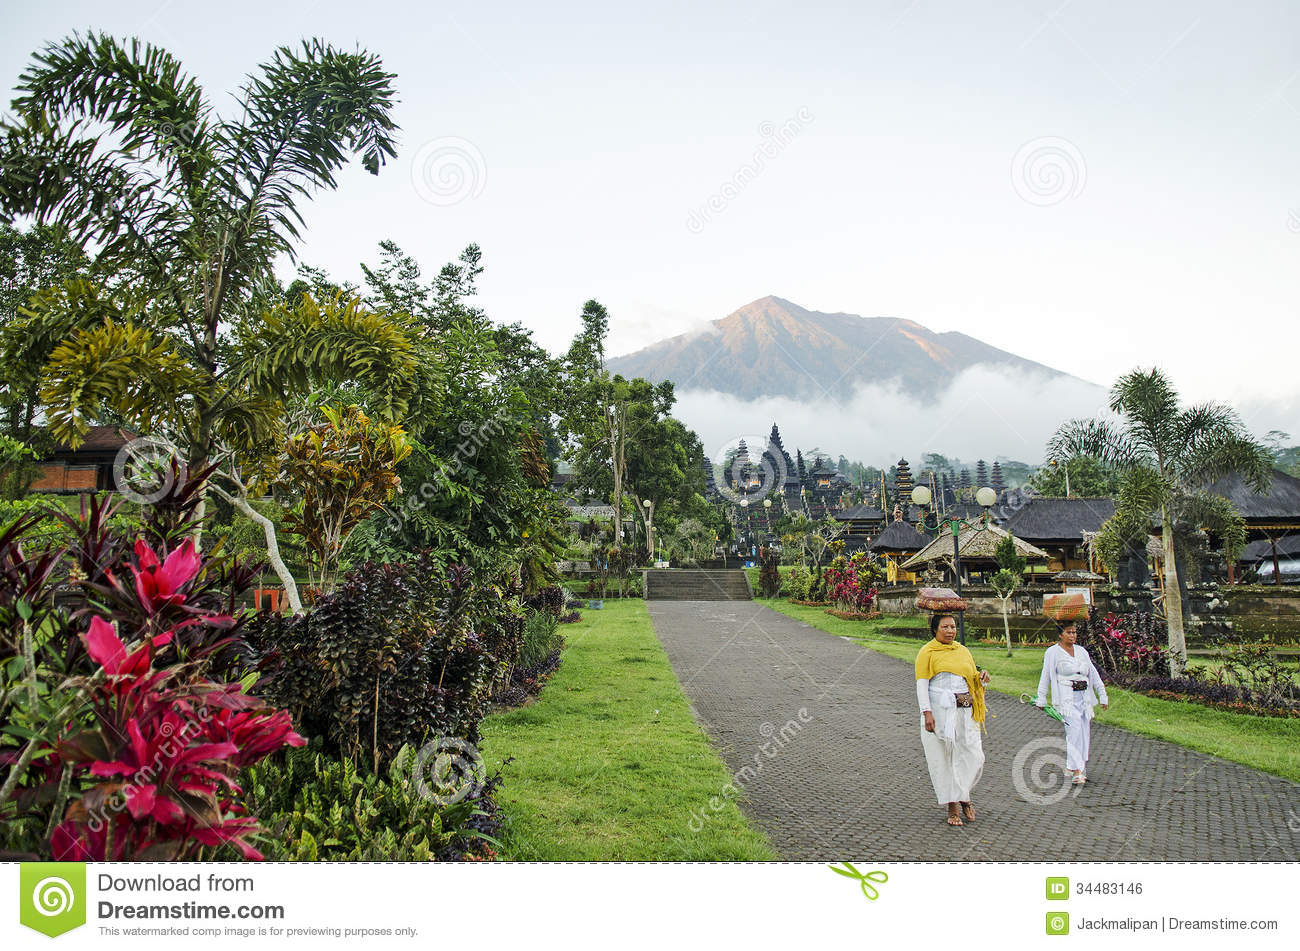 Mount Agung clipart #8, Download drawings